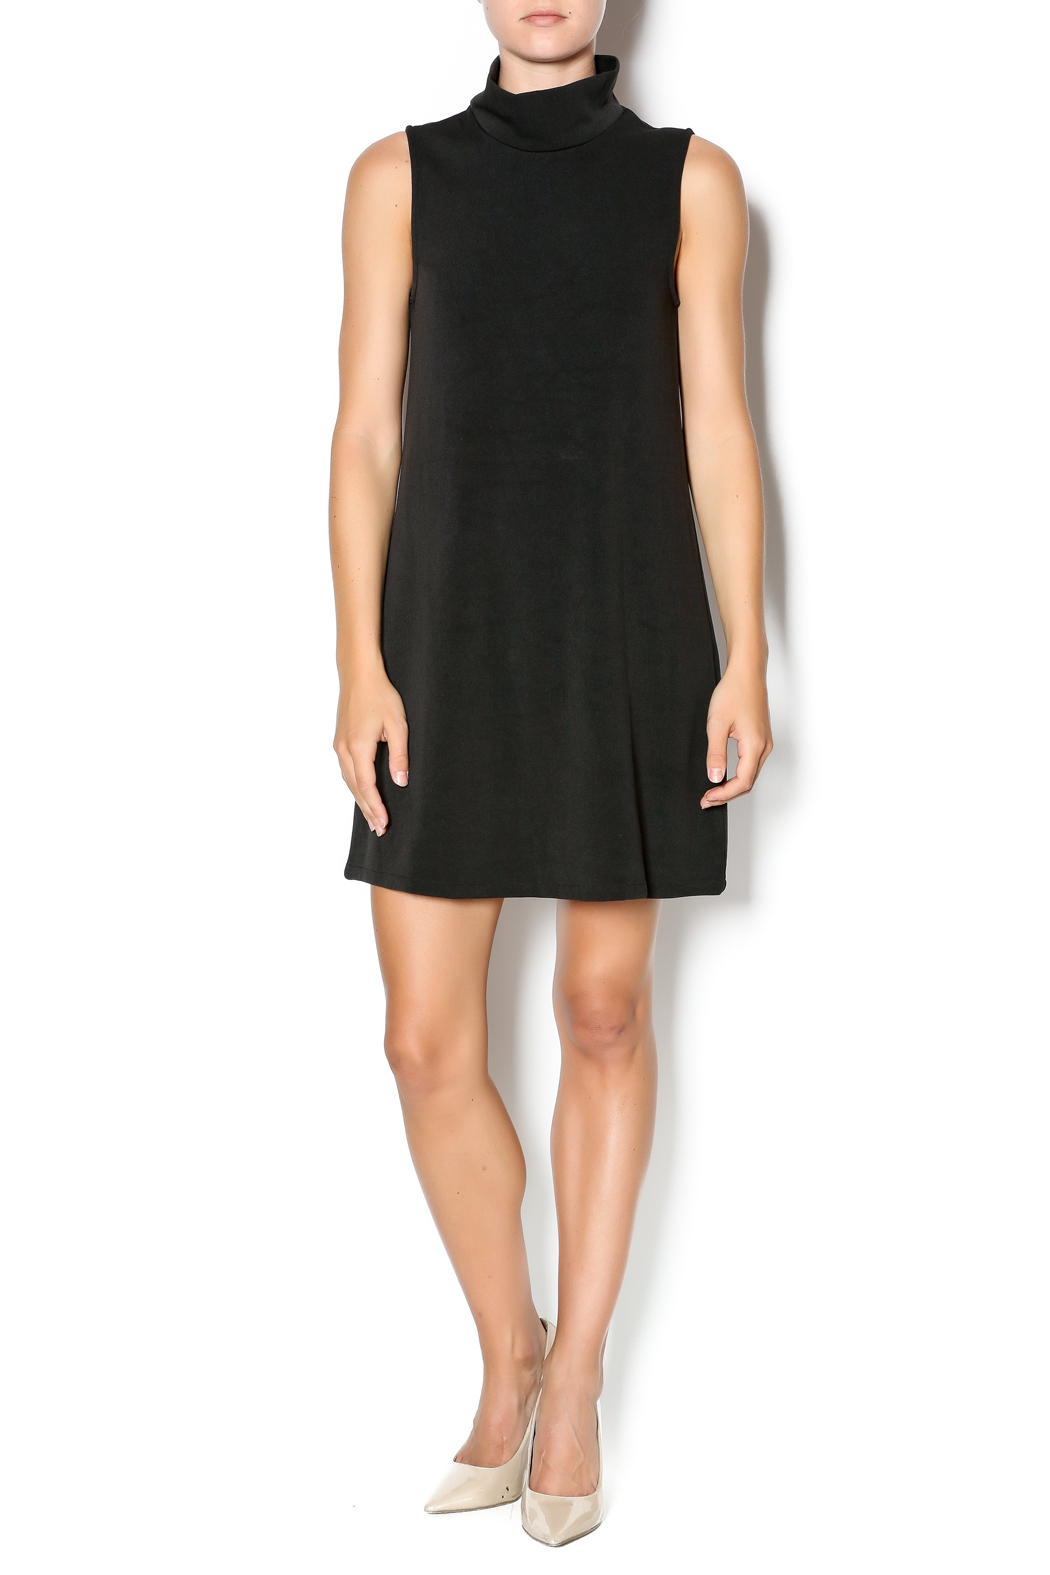 C. Luce Black Turtleneck Sleeveless Dress from Arkansas by ...